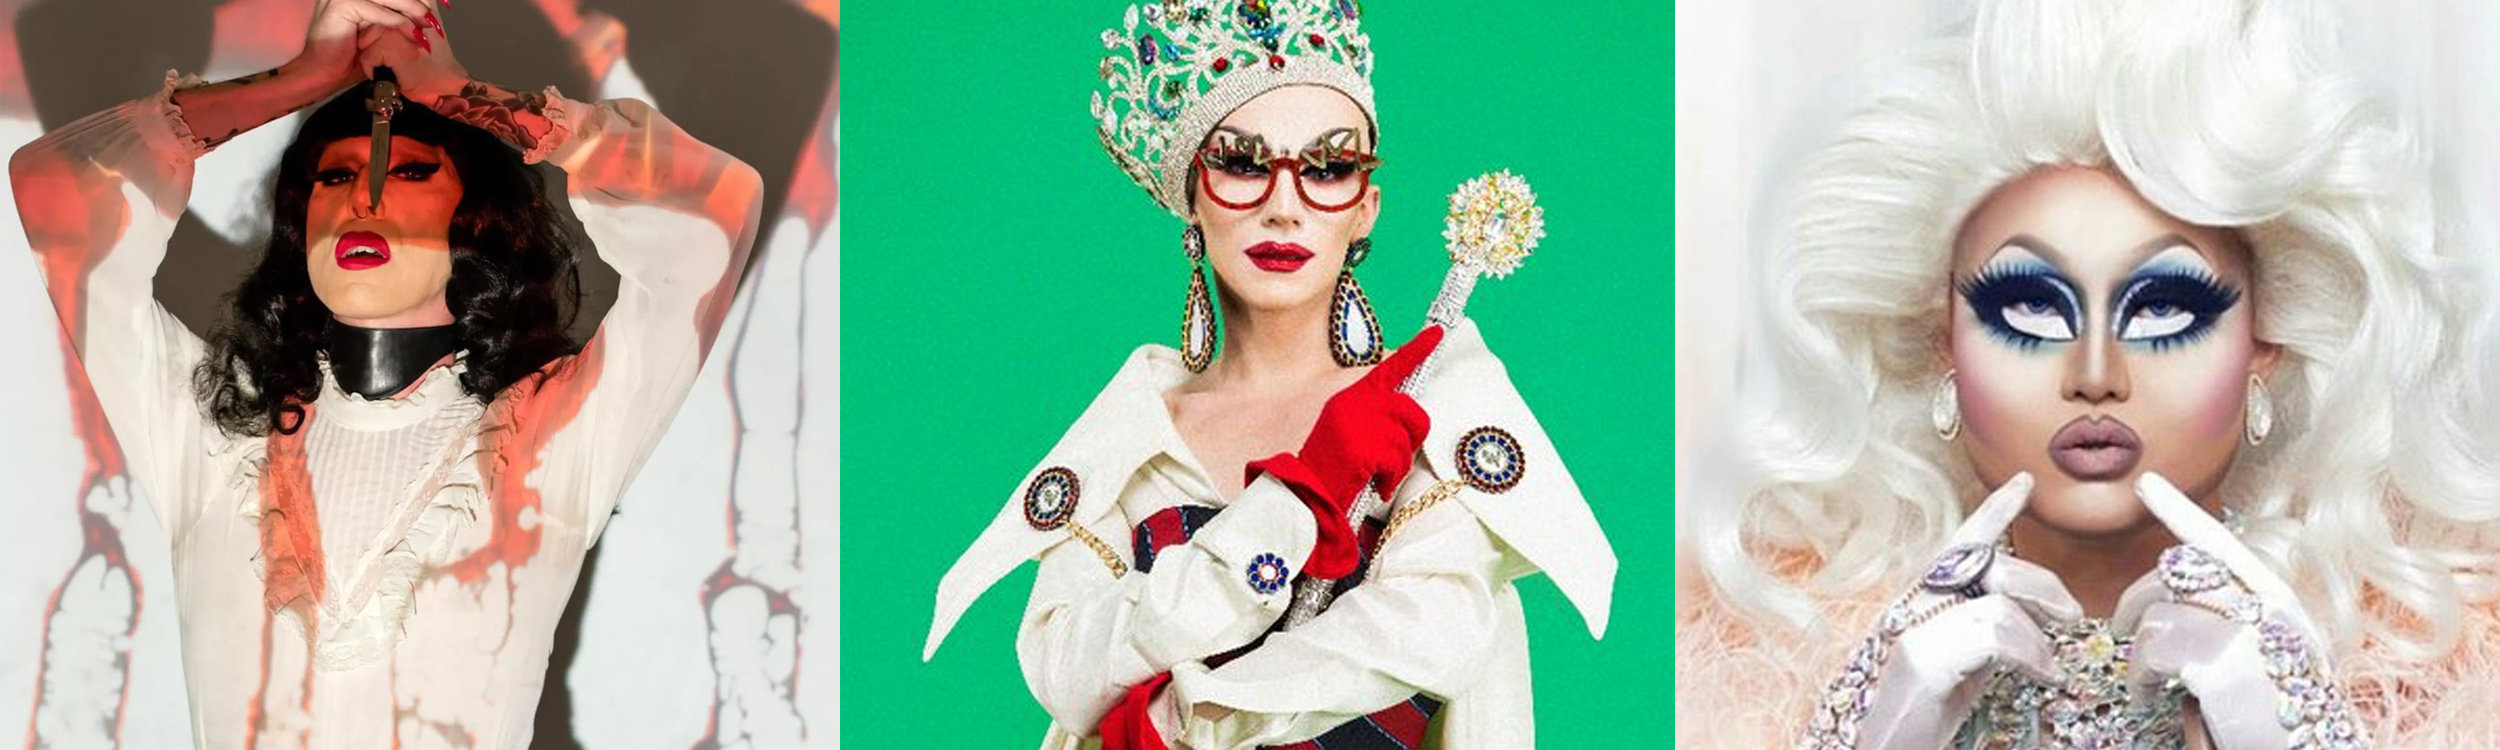 Favorite Queens: Louisianna Purchase, Sasha Velour, and Kim Chi